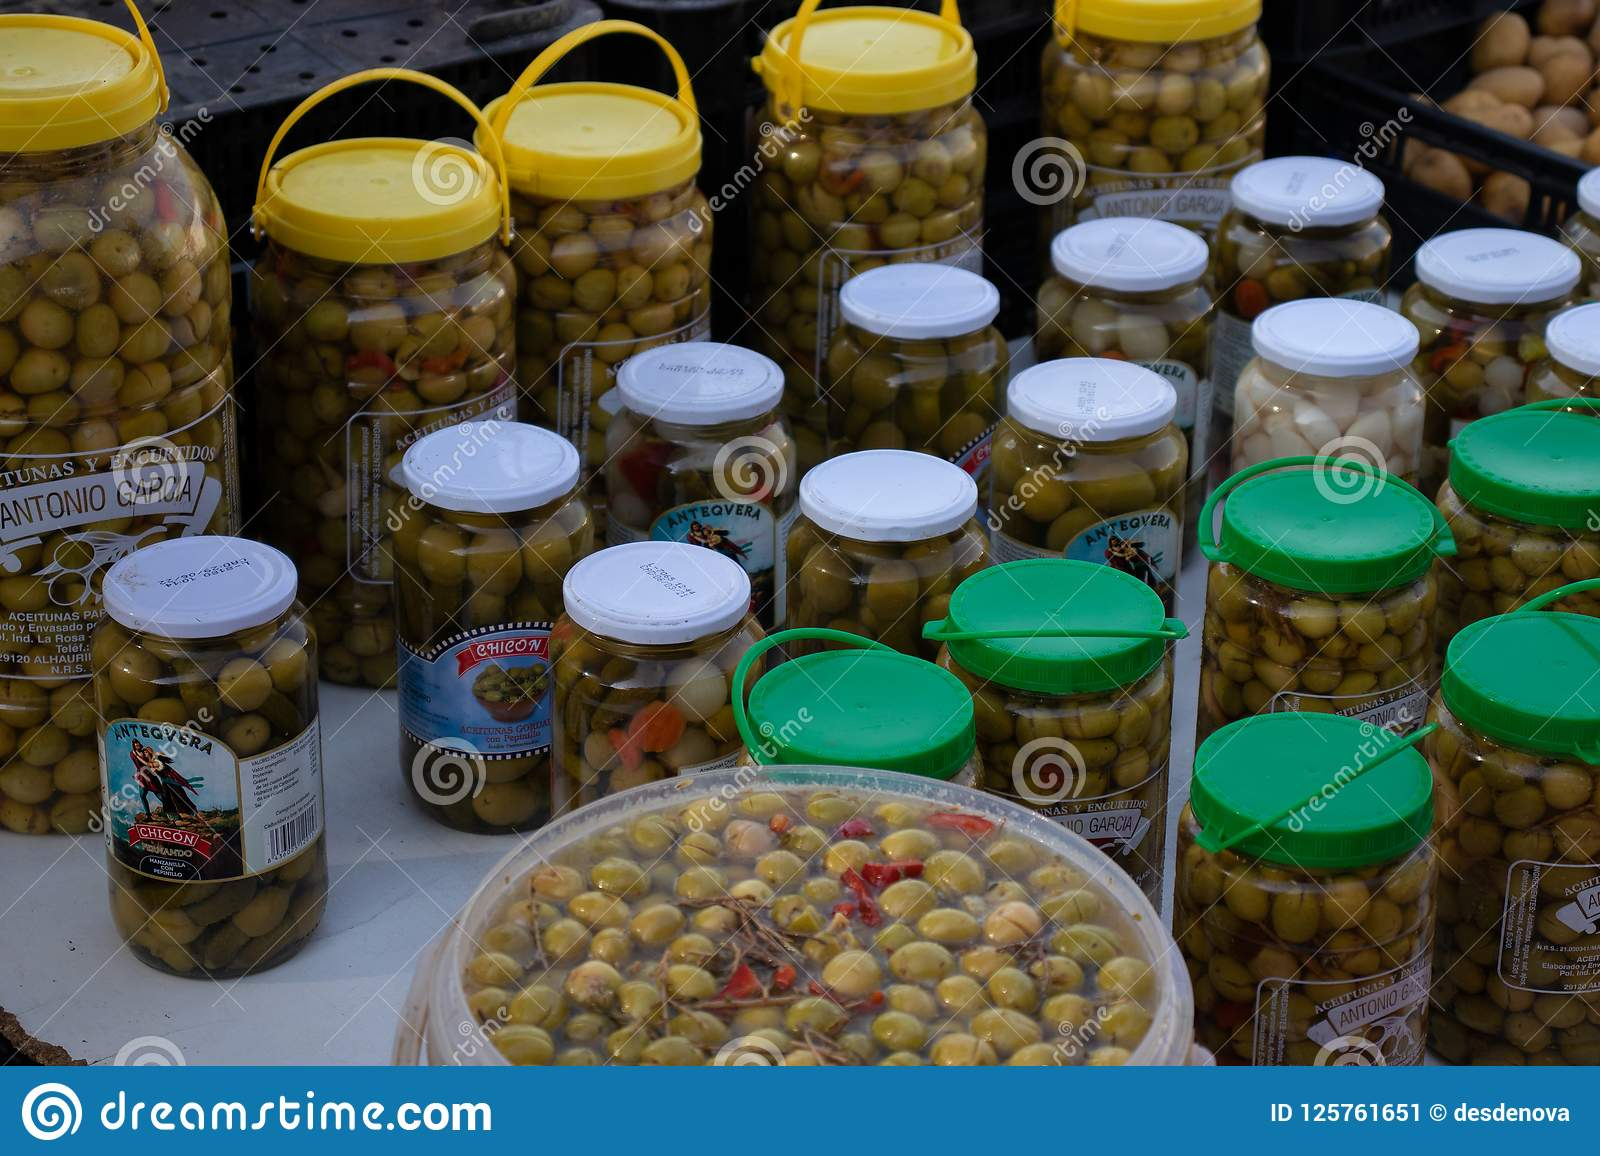 Canned green olives lined up